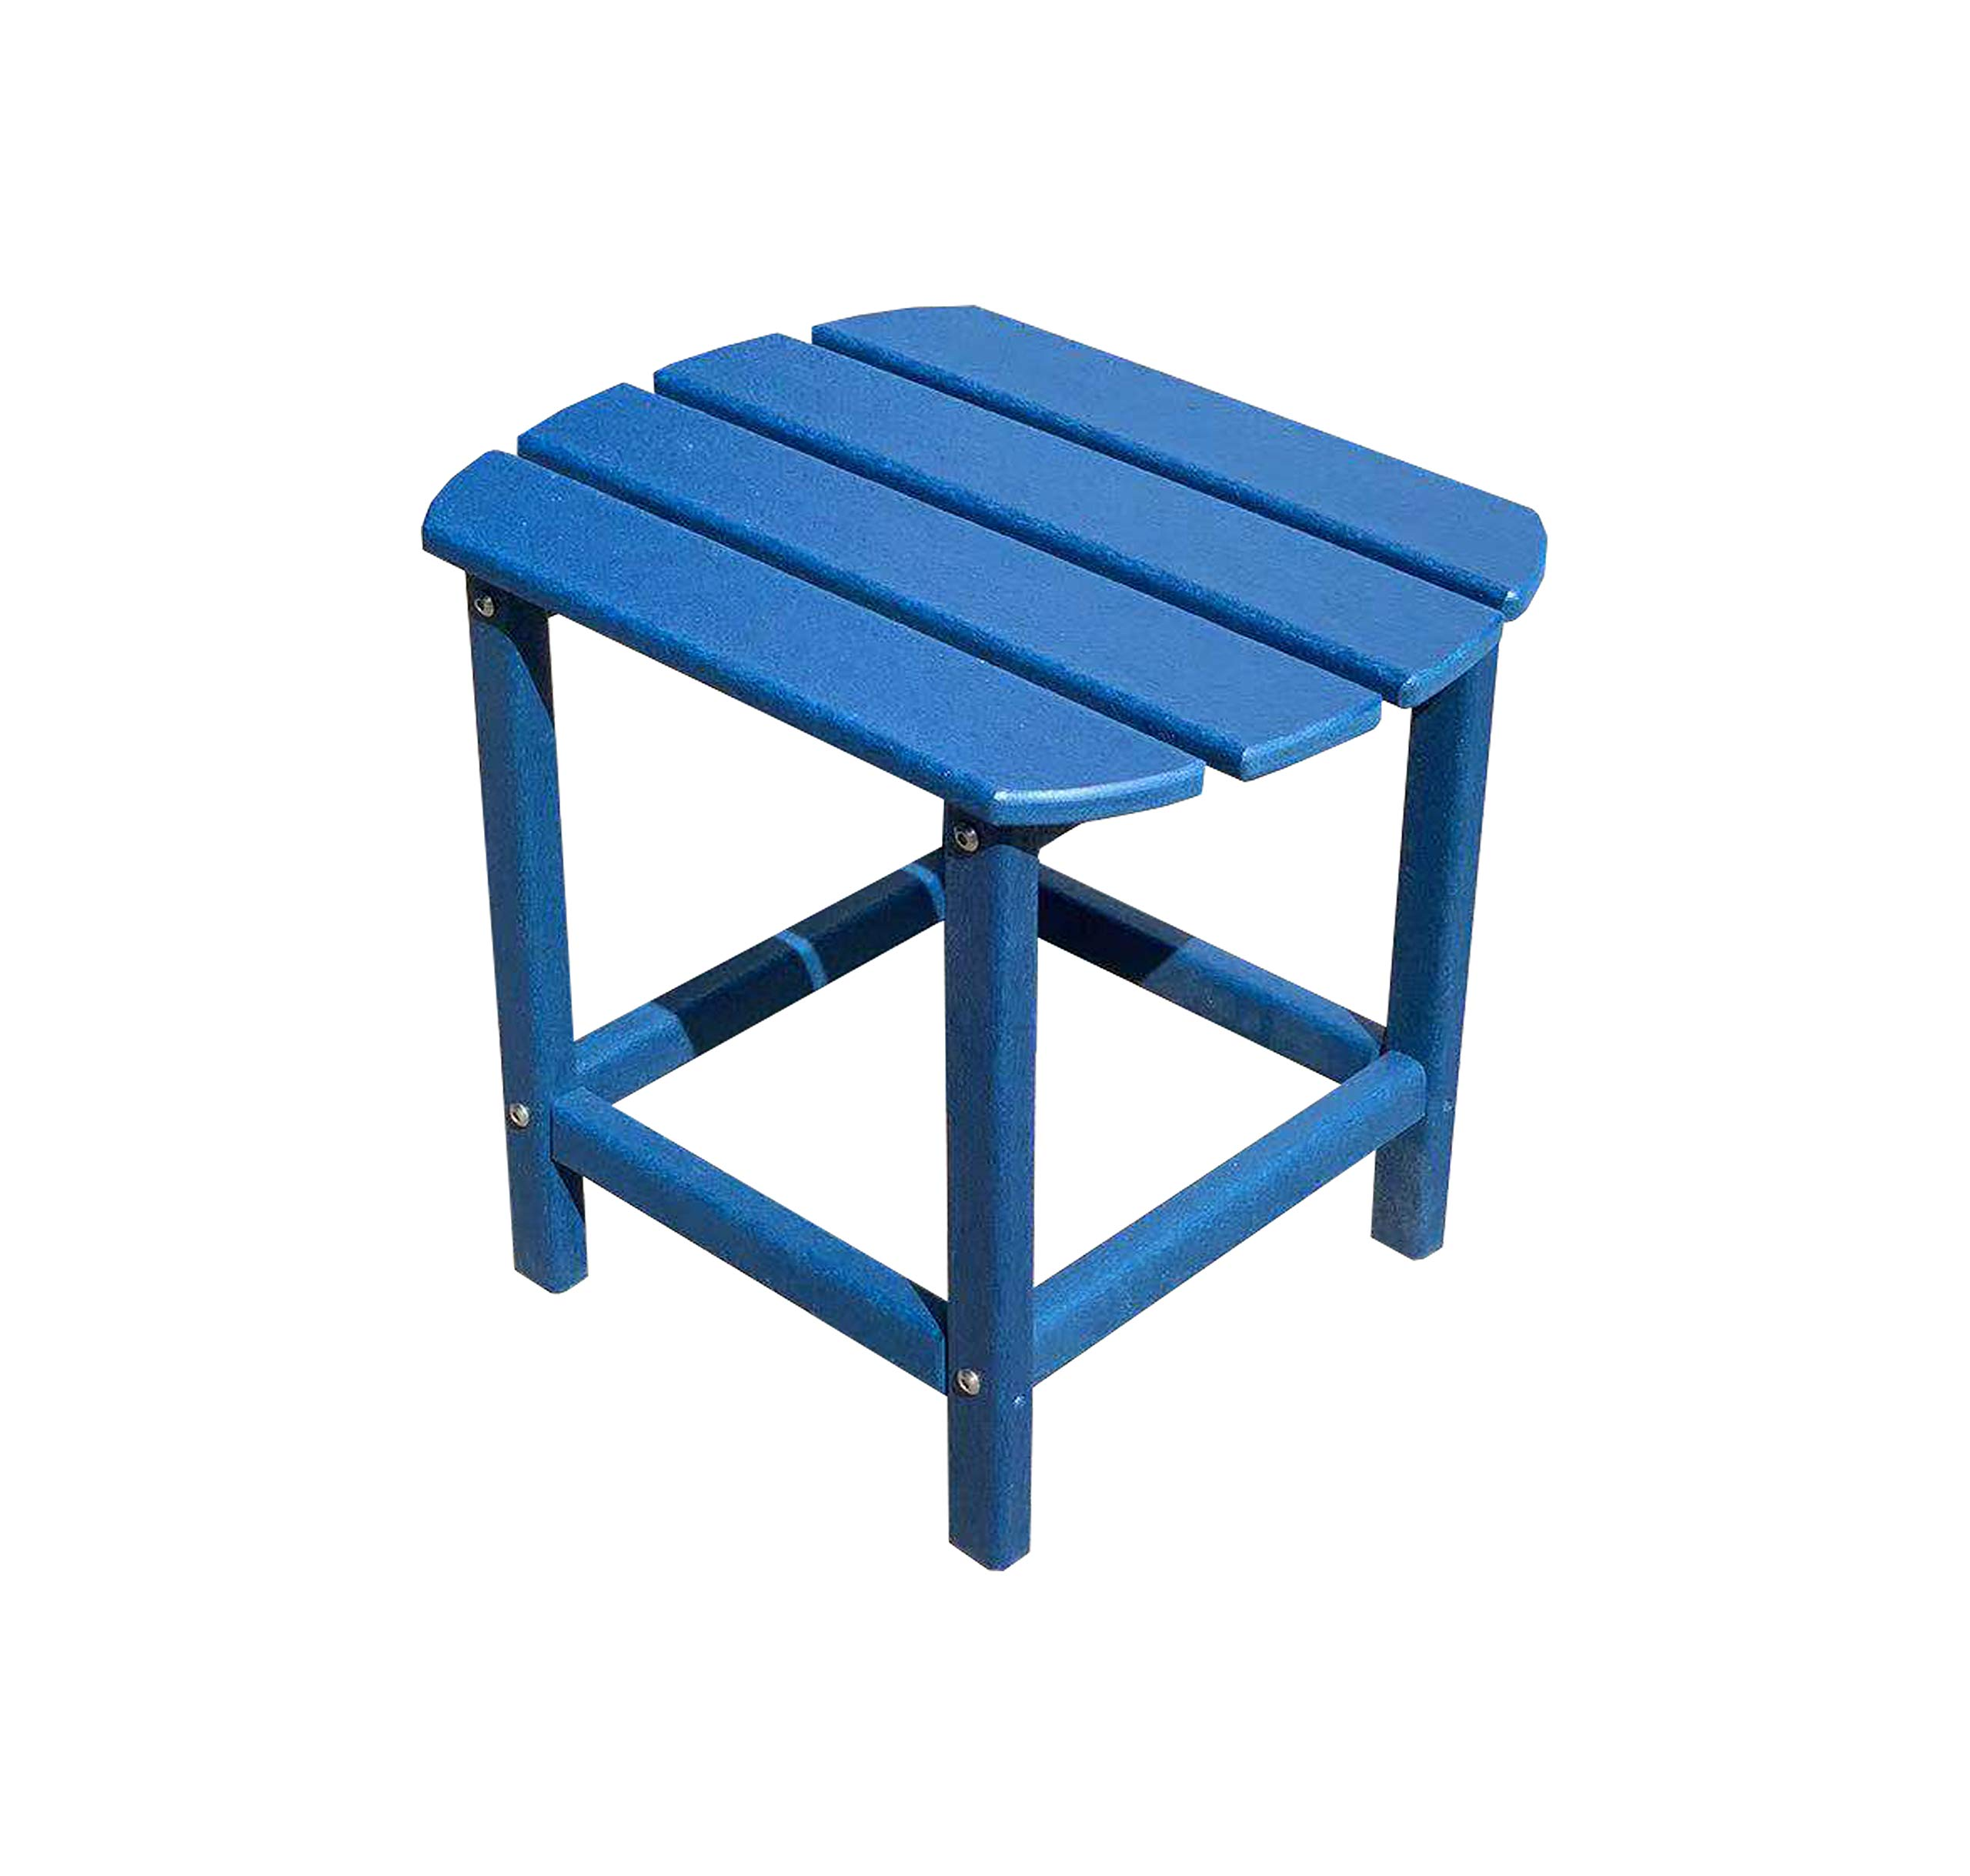 LuXeo LUX-1520-NVY-ST Corona Recycled Plastic Side Table, Navy by LuXeo